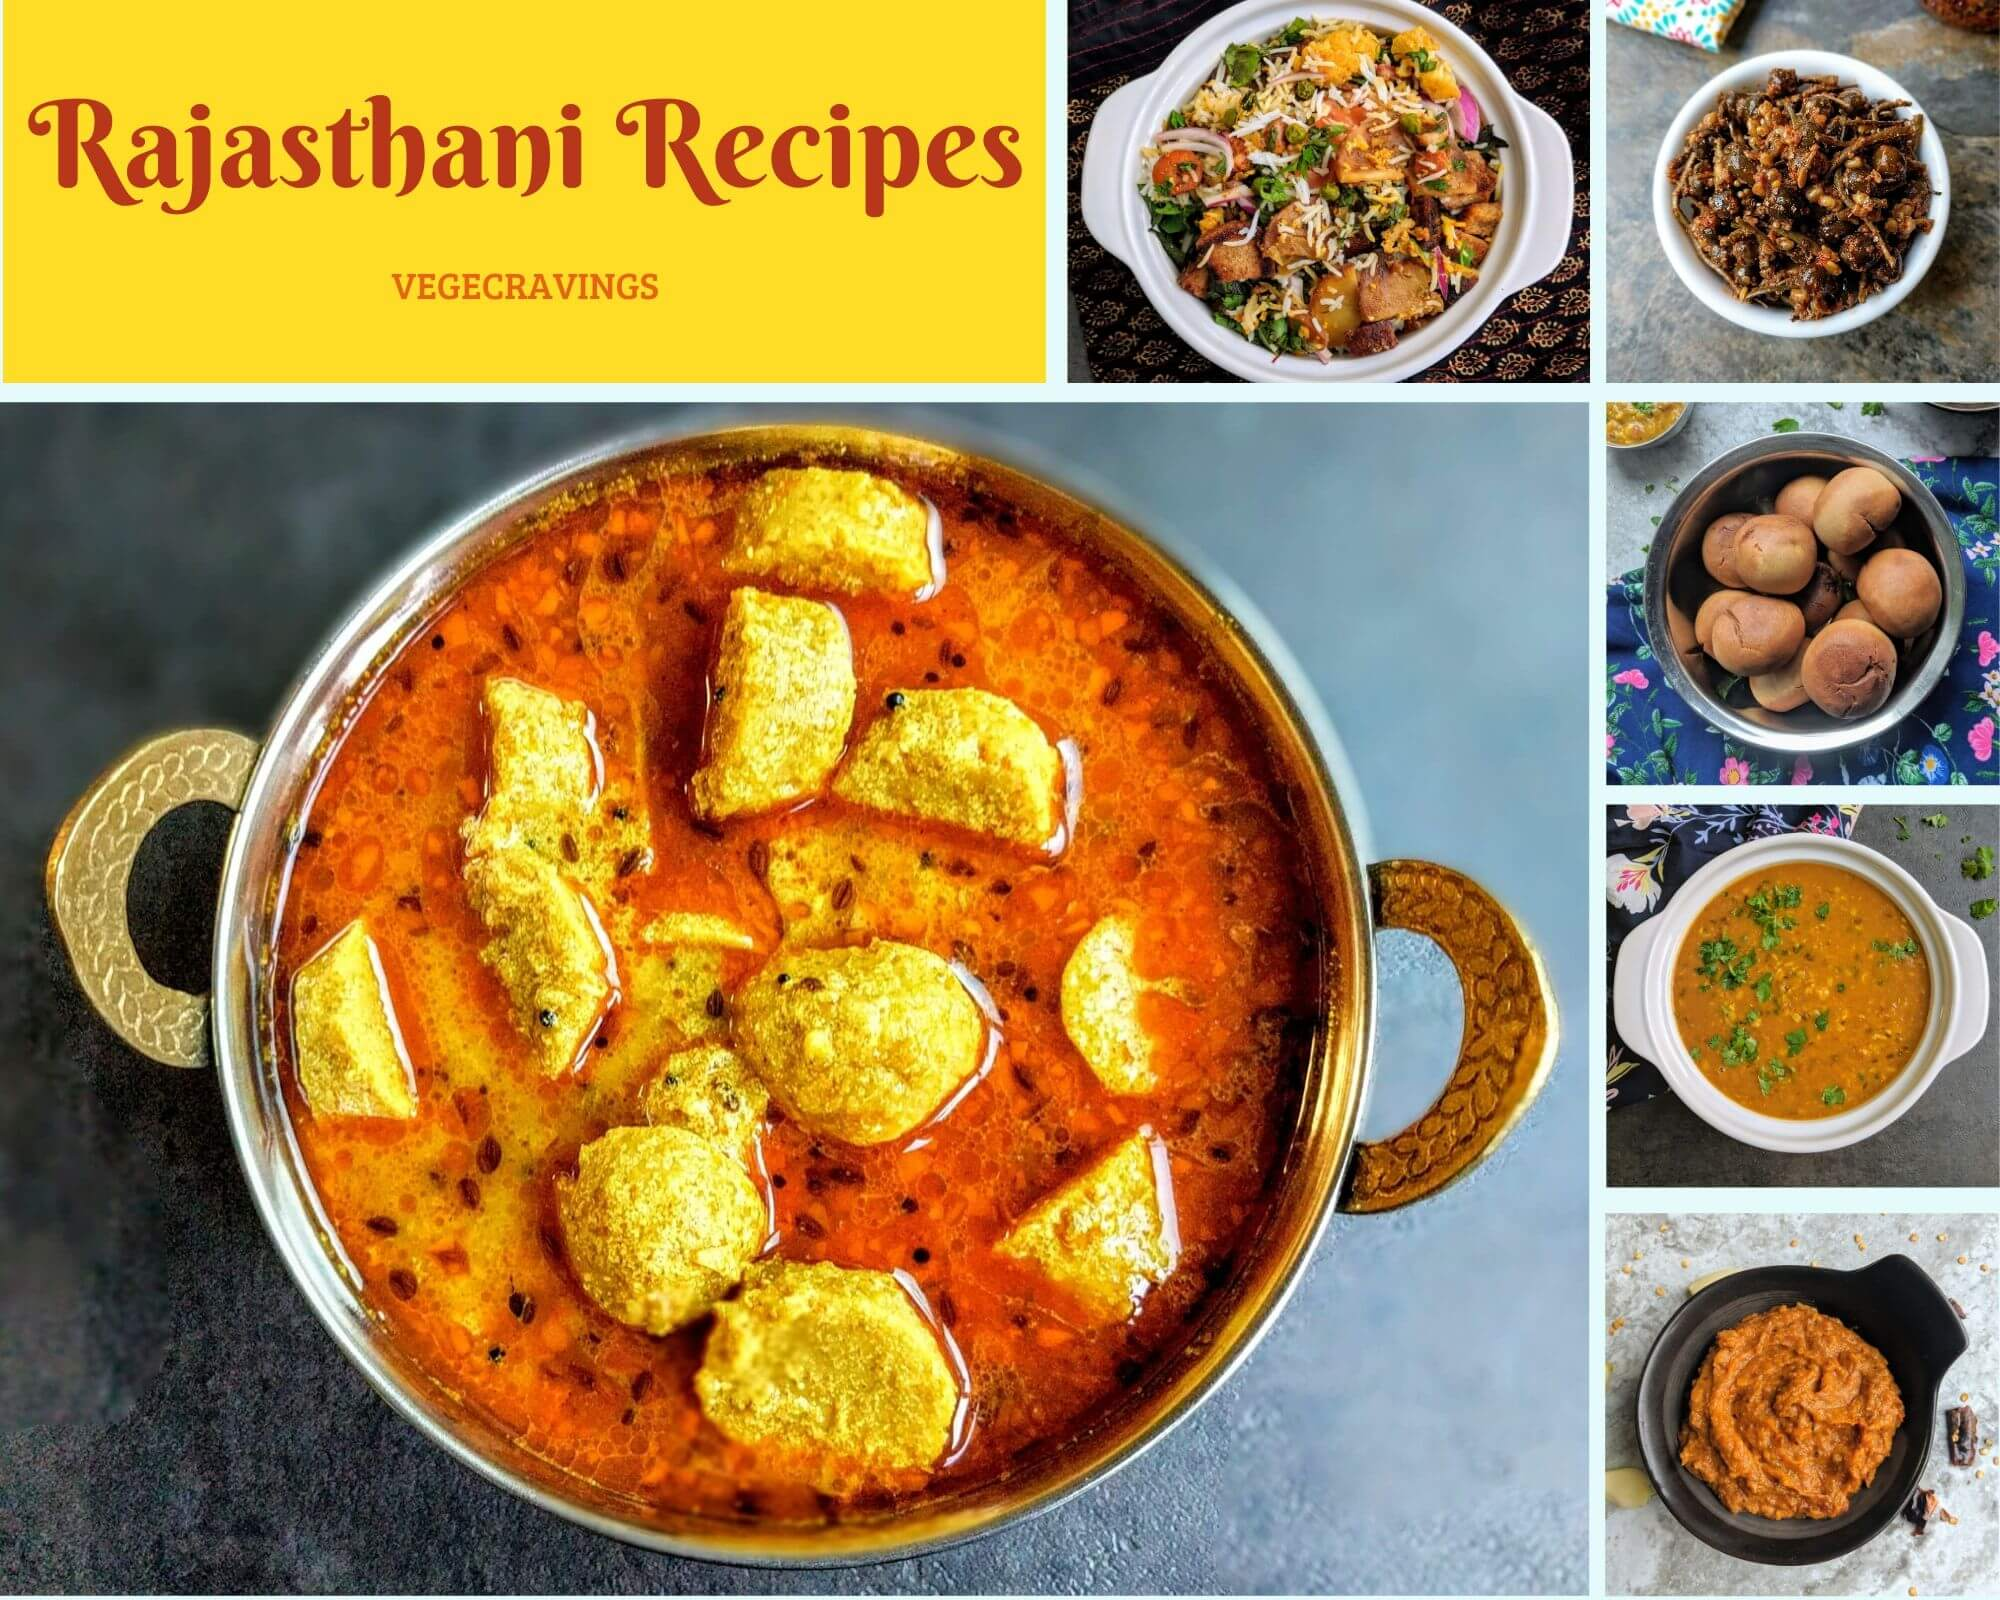 We bring to you a collection of authentic vegetarian recipes from the land of Maharajas. Rajasthani Cuisine is really unique both in it's cooking techniques and the ingredients used due its royal background as well the lack of green vegetables & the prevelant arid conditions.